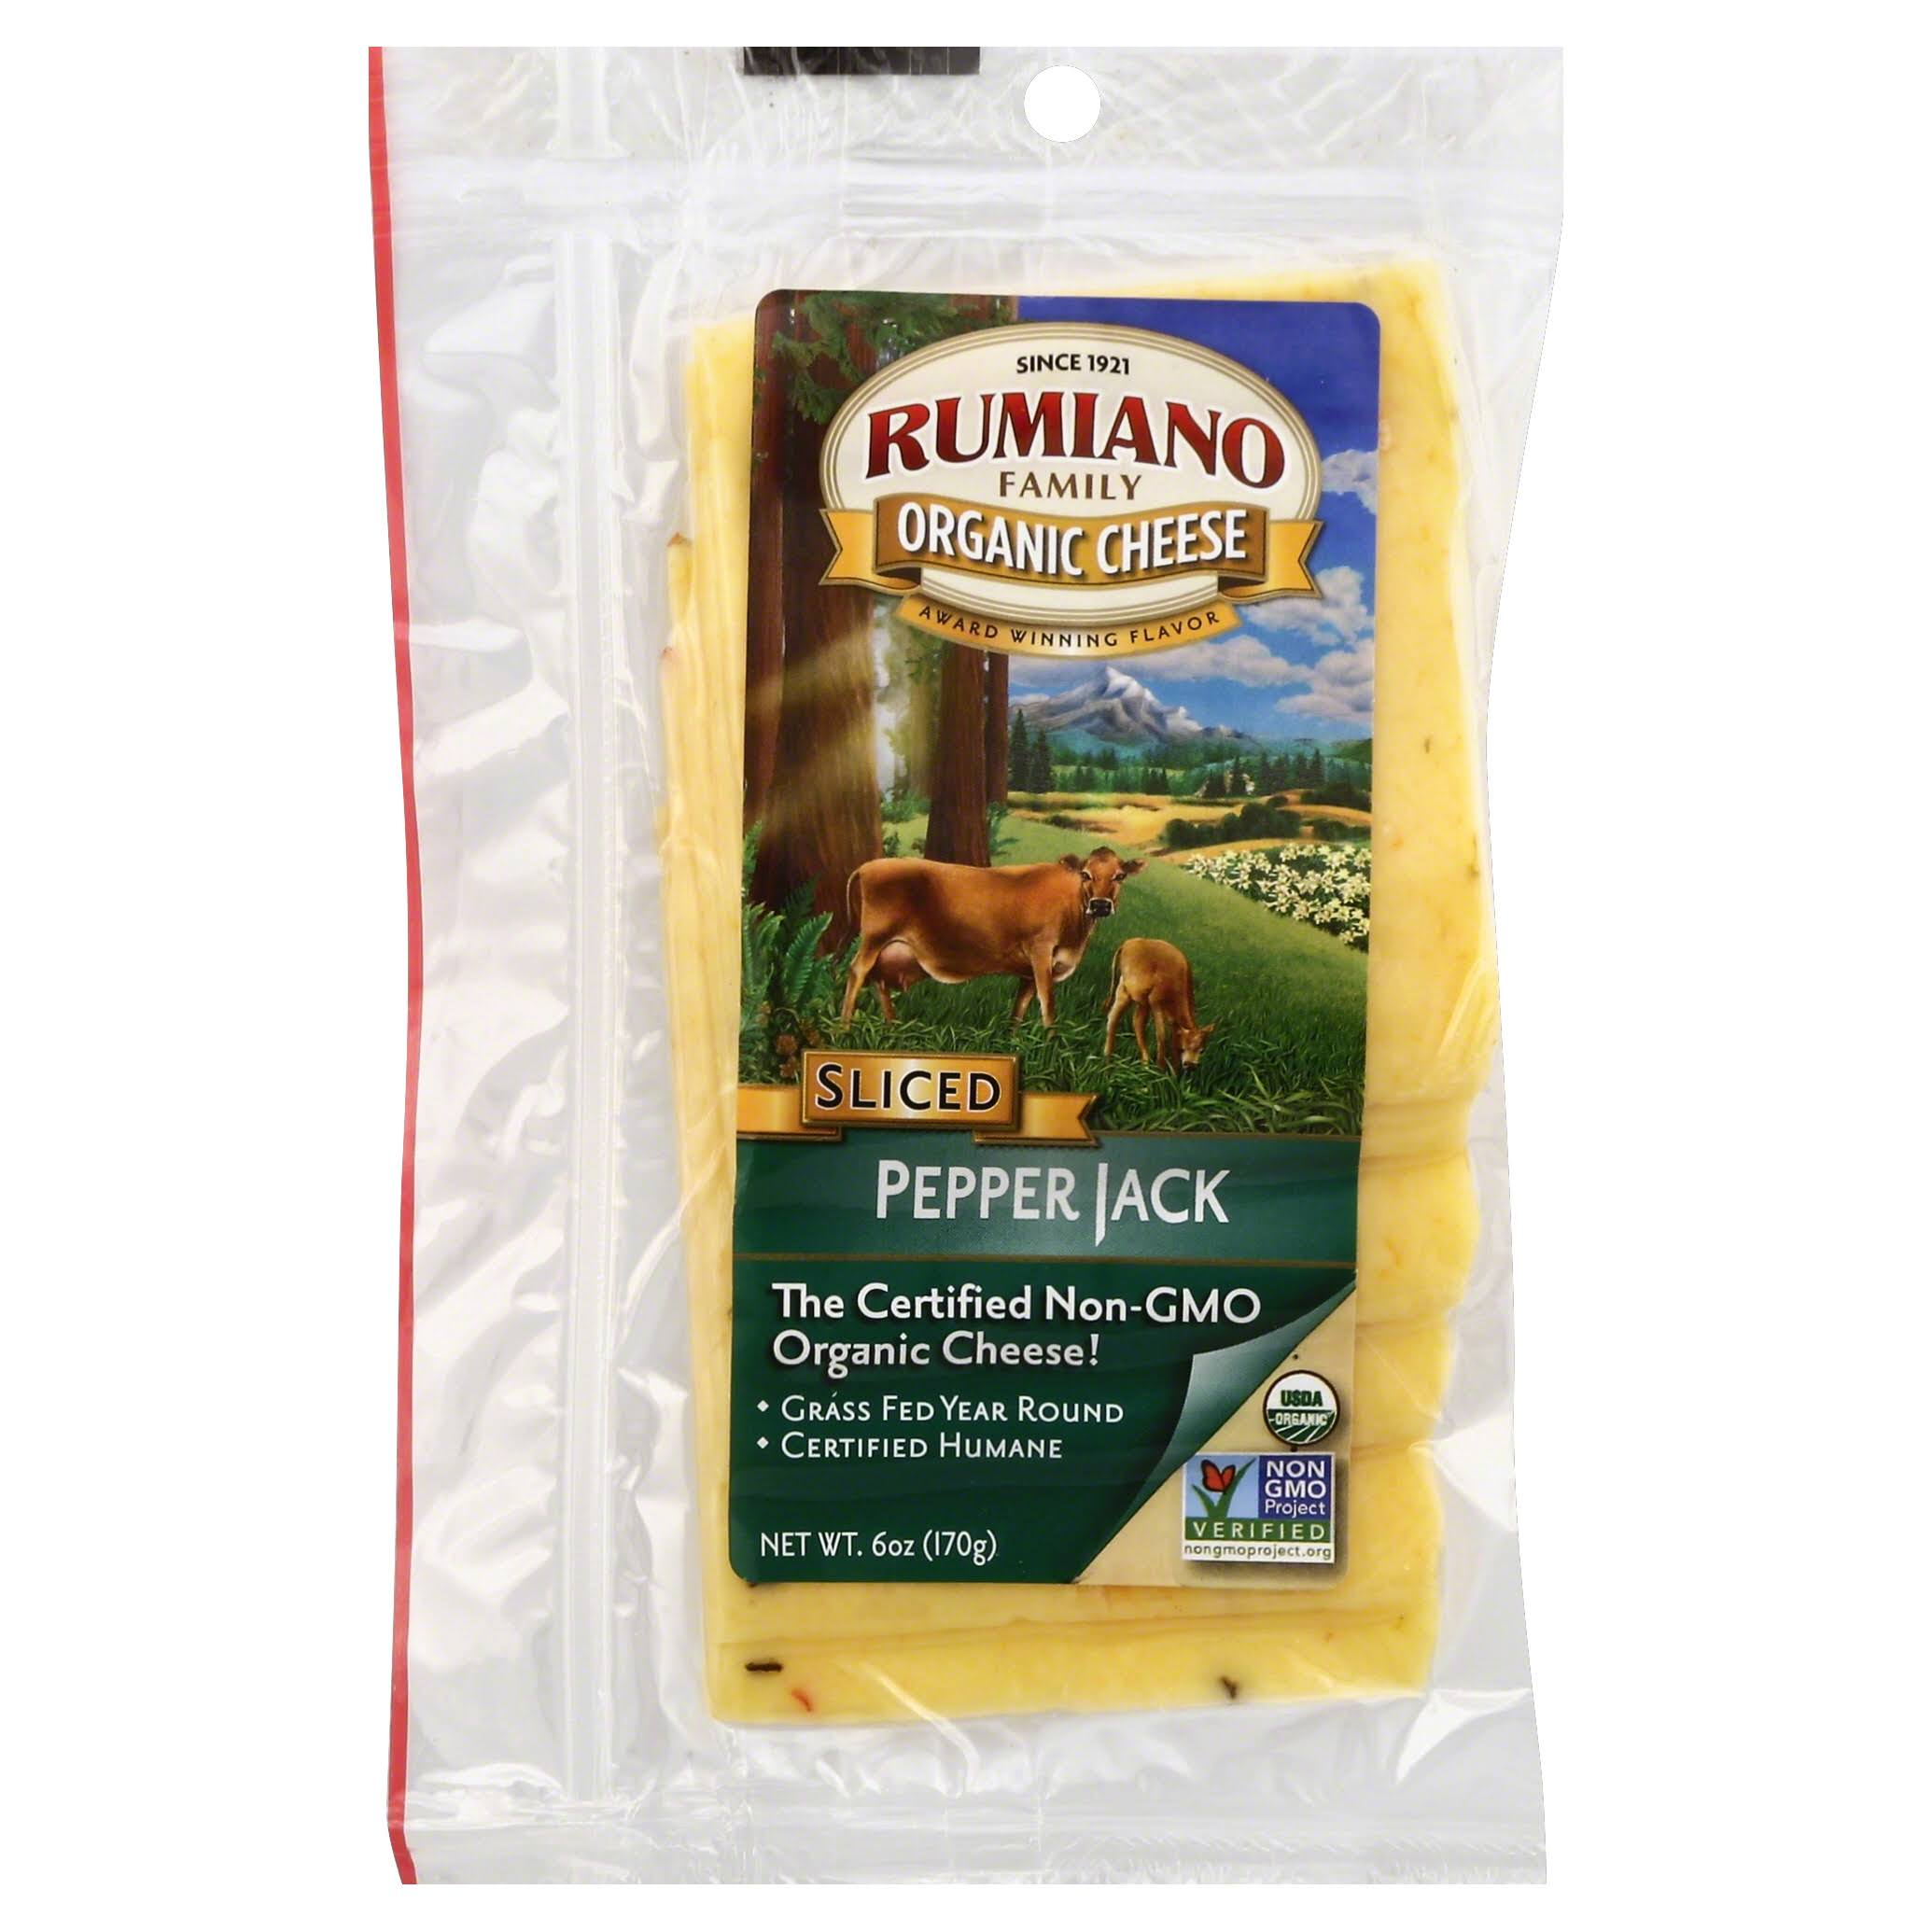 Rumiano Sliced Pepper Jack Cheese - 6oz